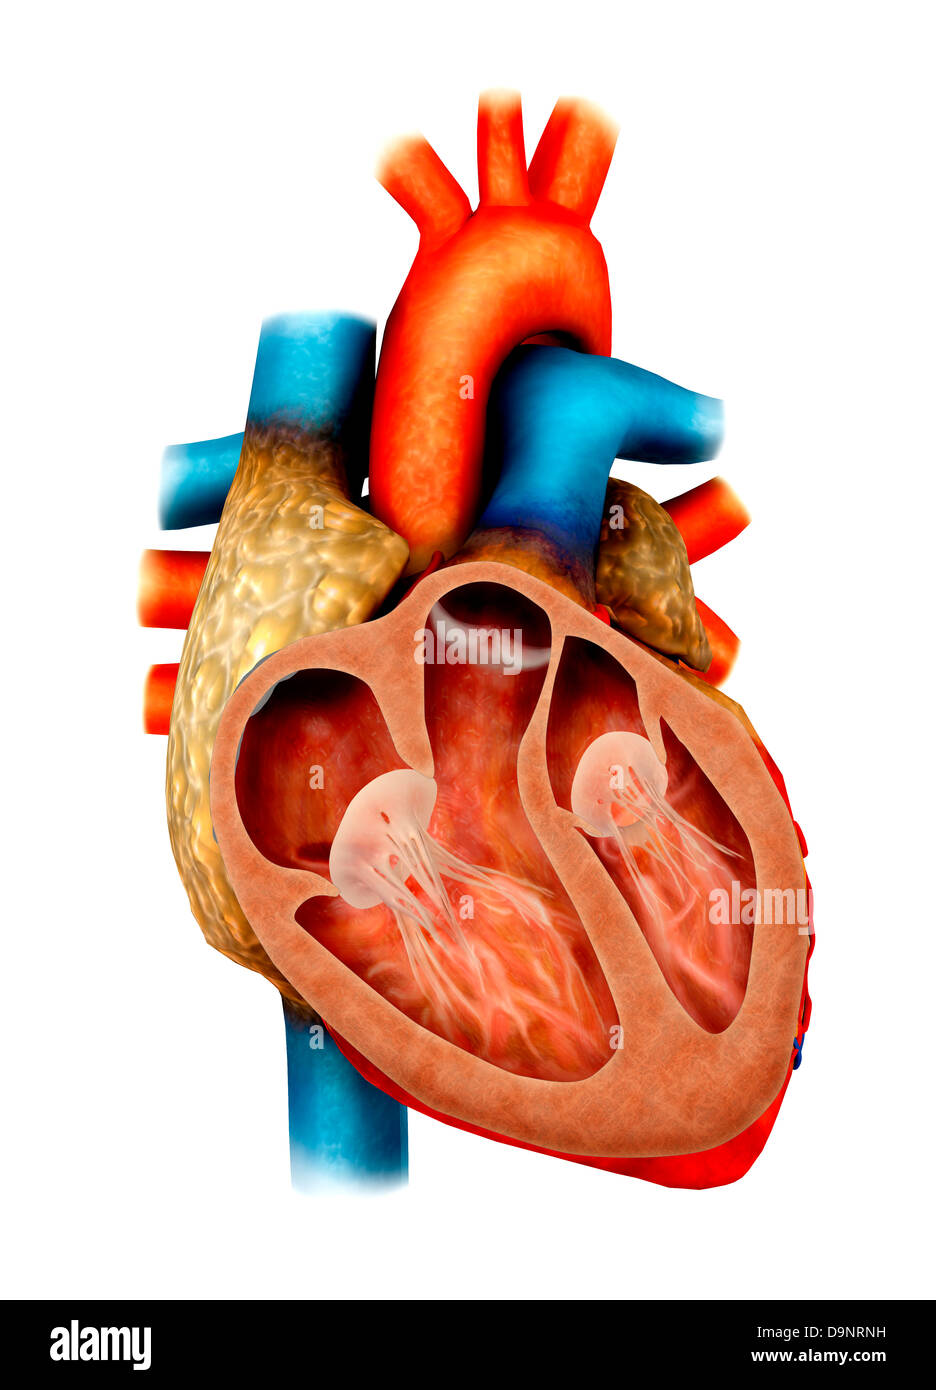 Anatomy of human heart, cross section Stock Photo: 57642637 - Alamy